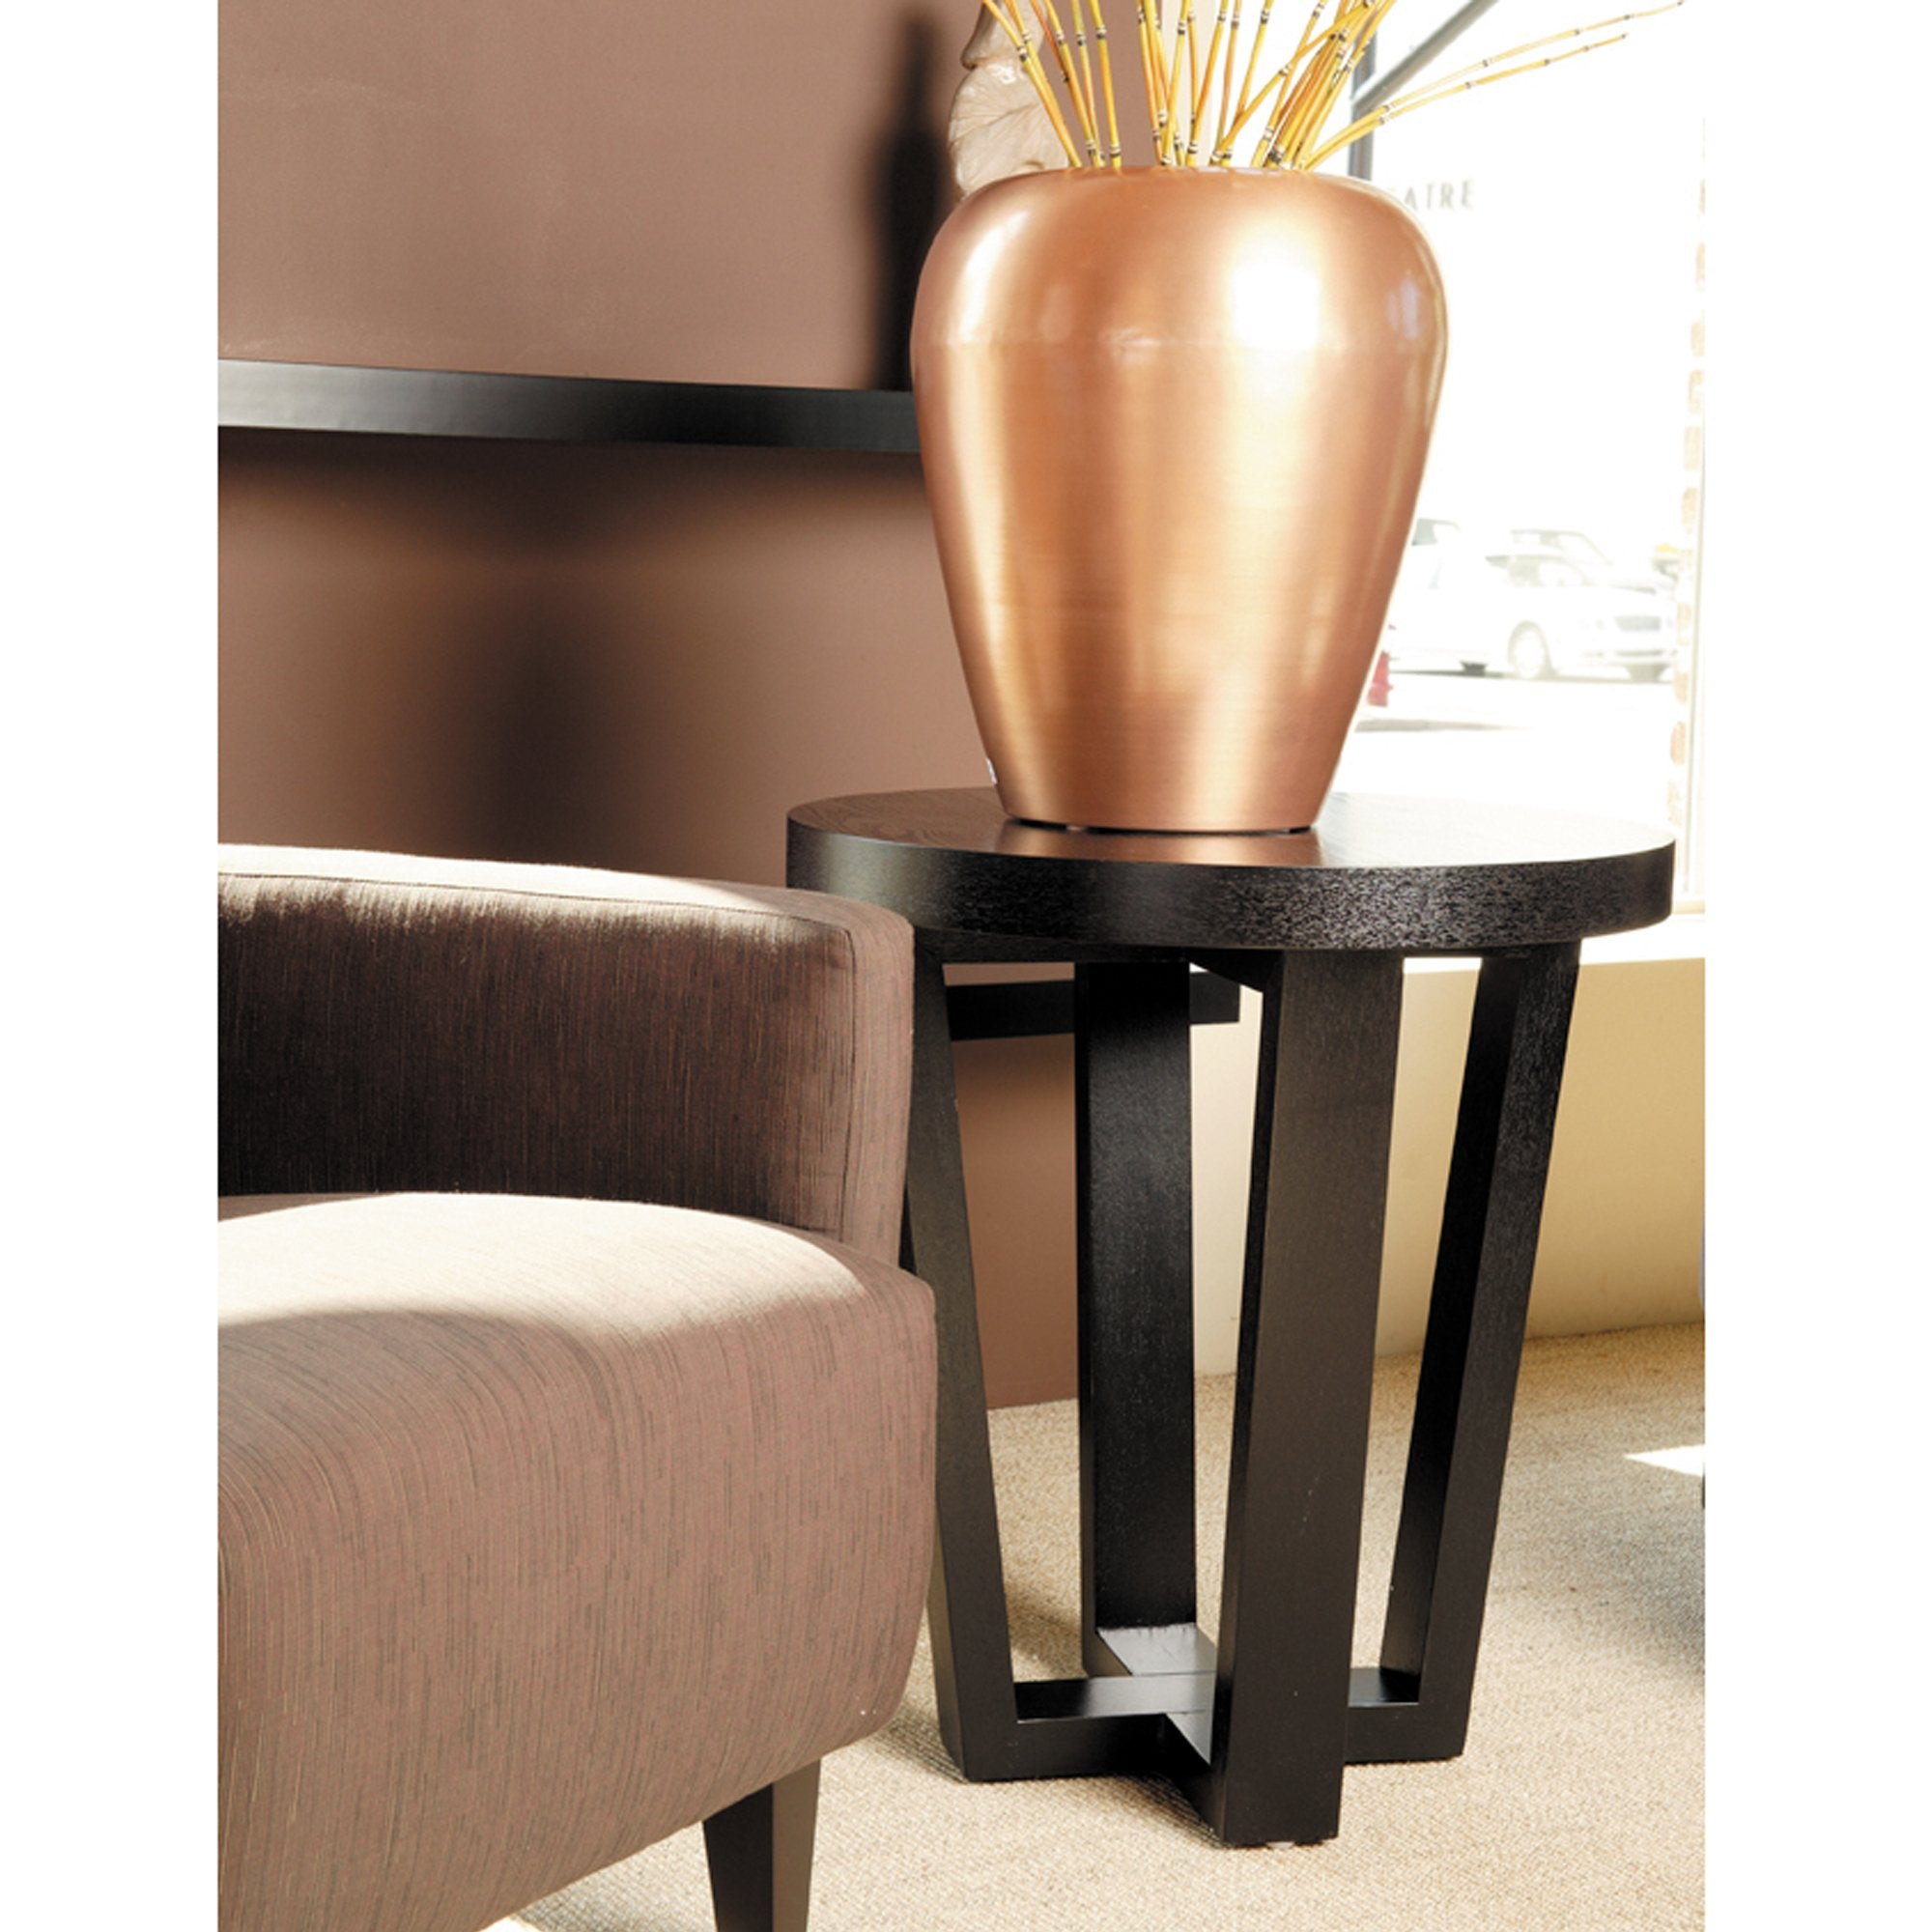 Andy Round End Table in Black